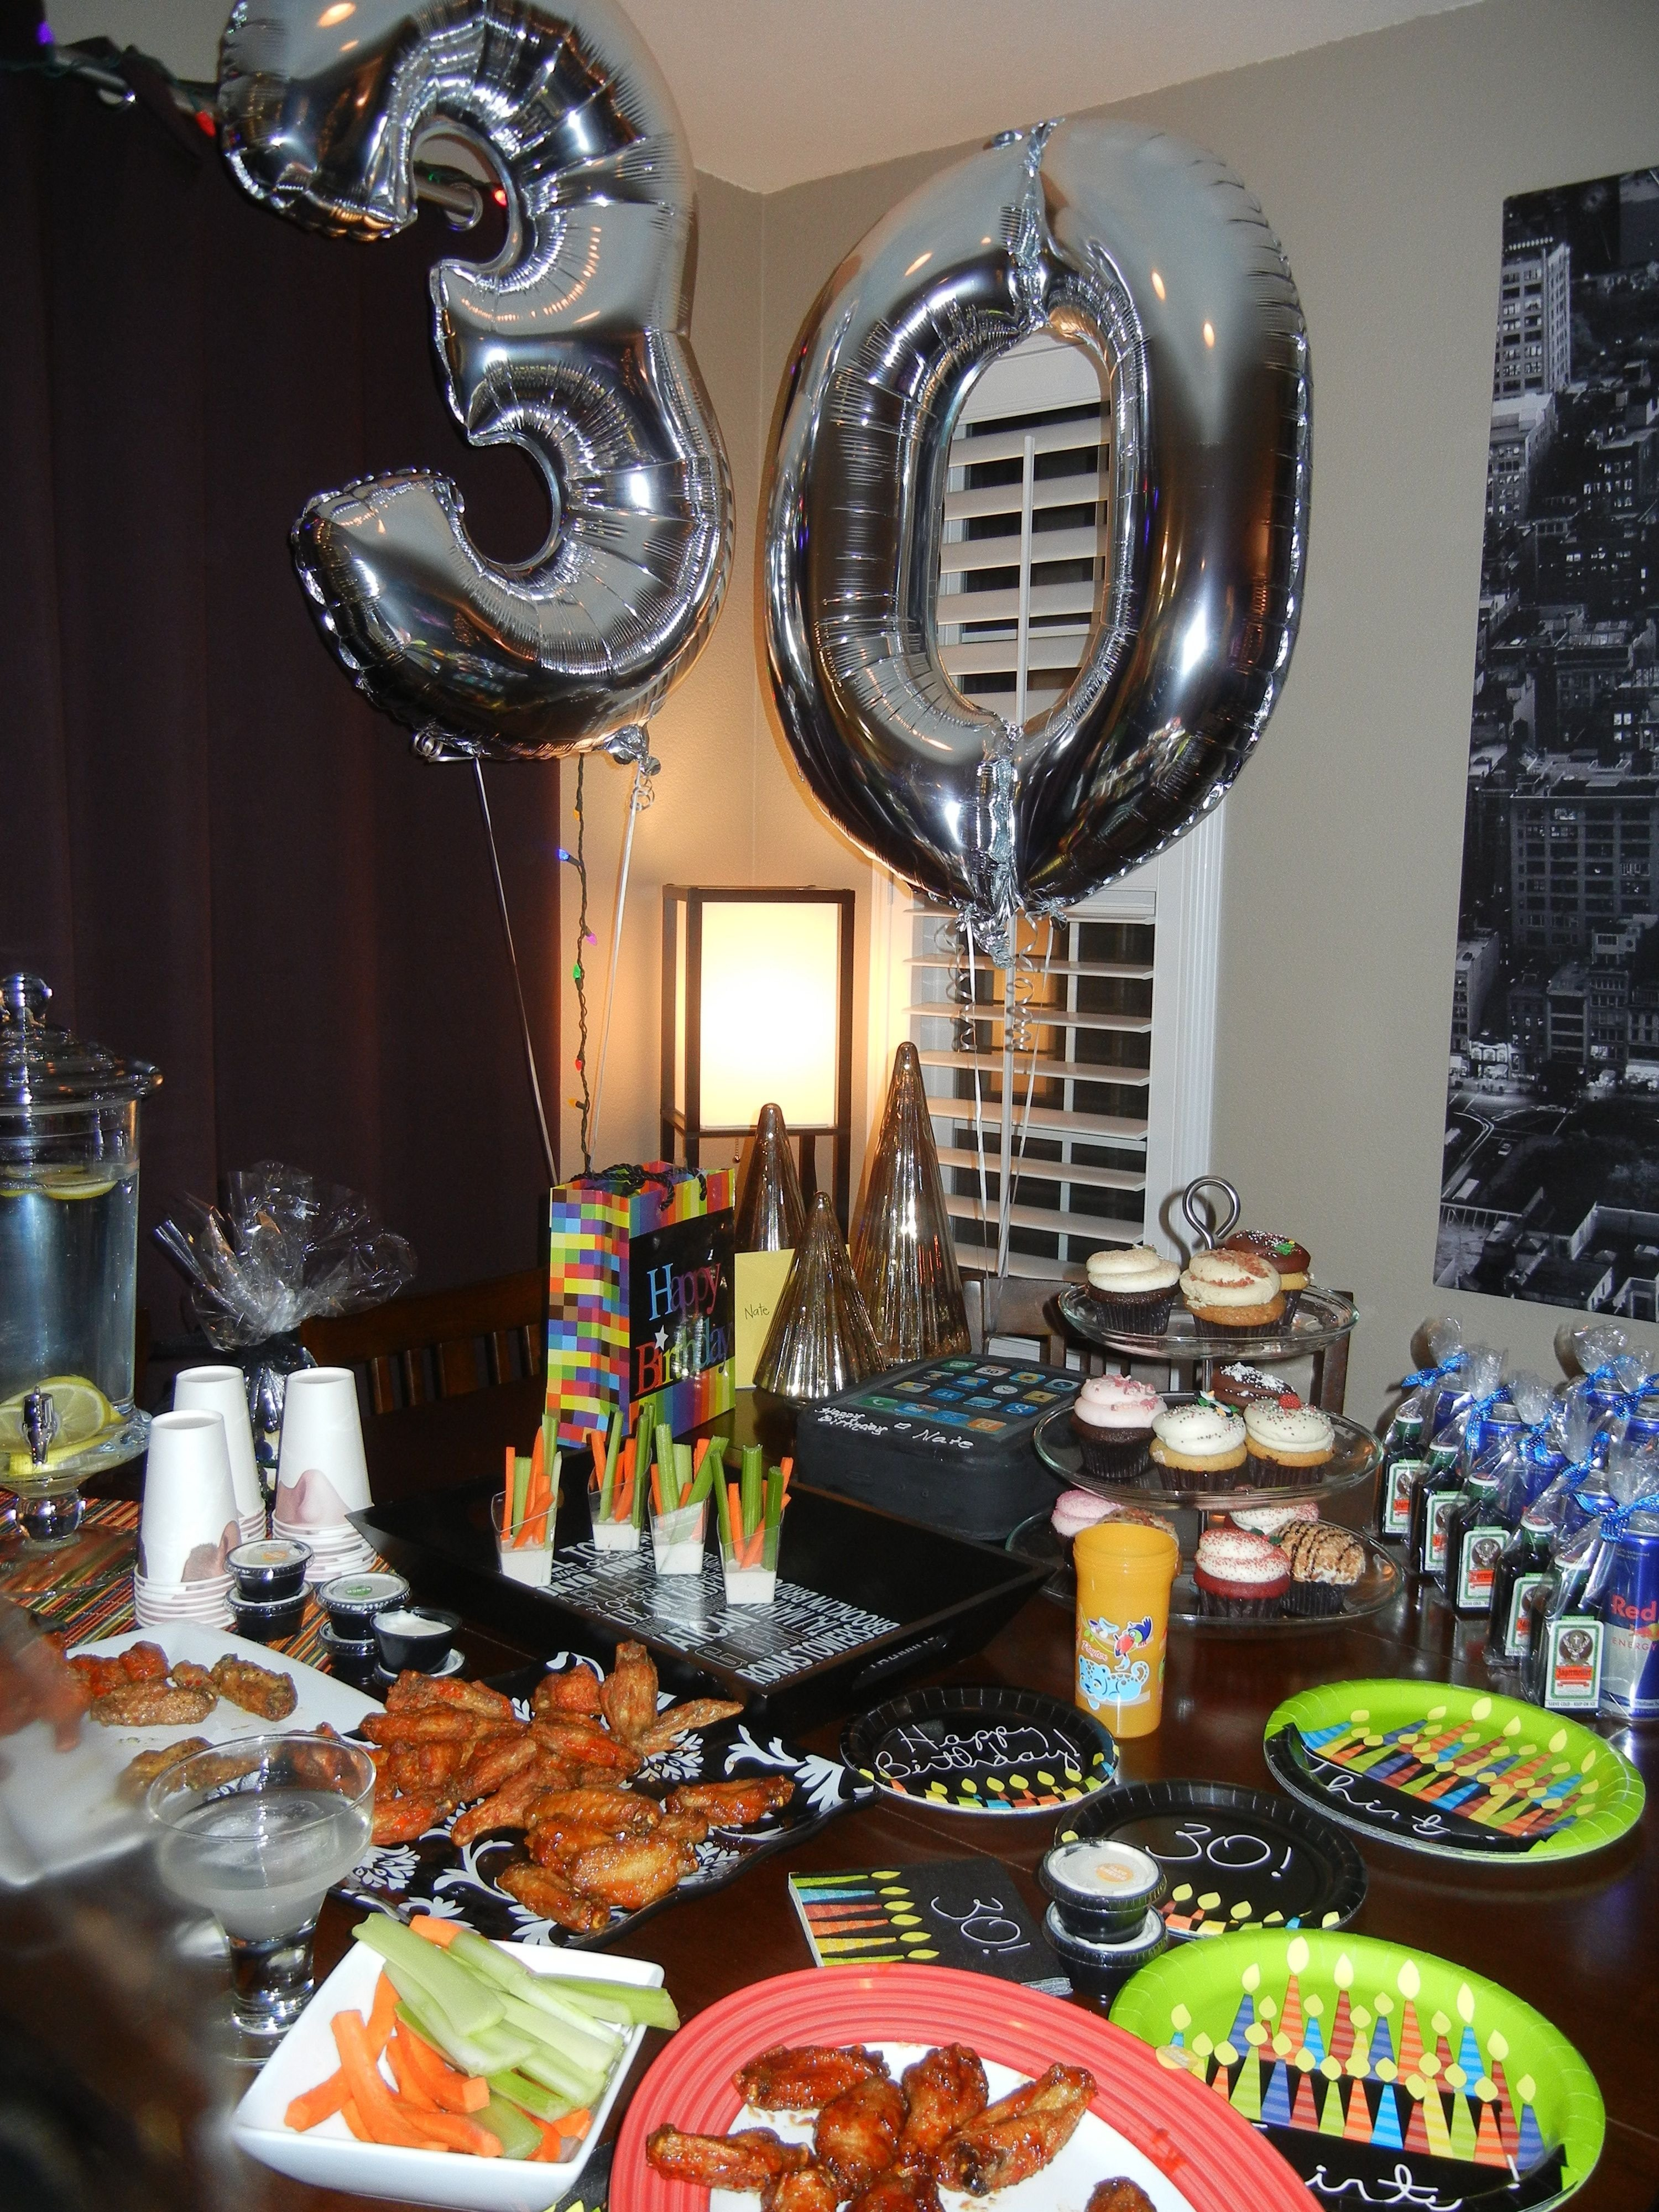 10 Fantastic Surprise Party Ideas For A Man husbands 30th birthday my stuff pinterest 30 birthday 30th 8 2020